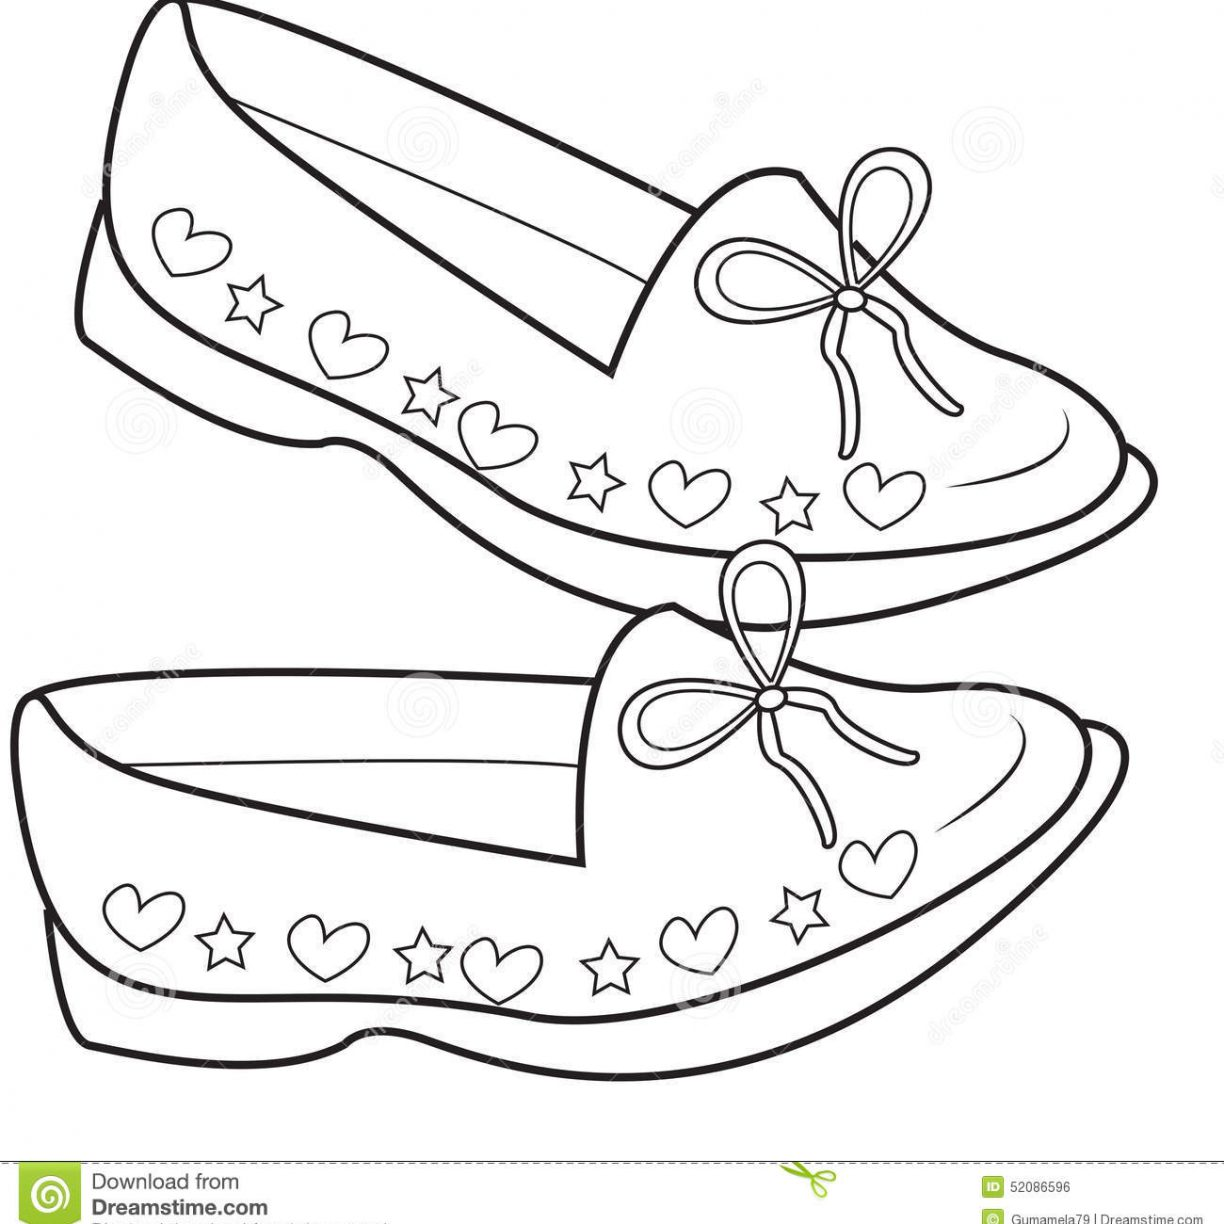 1224x1224 Shoes Coloring Pages Coloringsuite Com Throughout Jordan Stunning